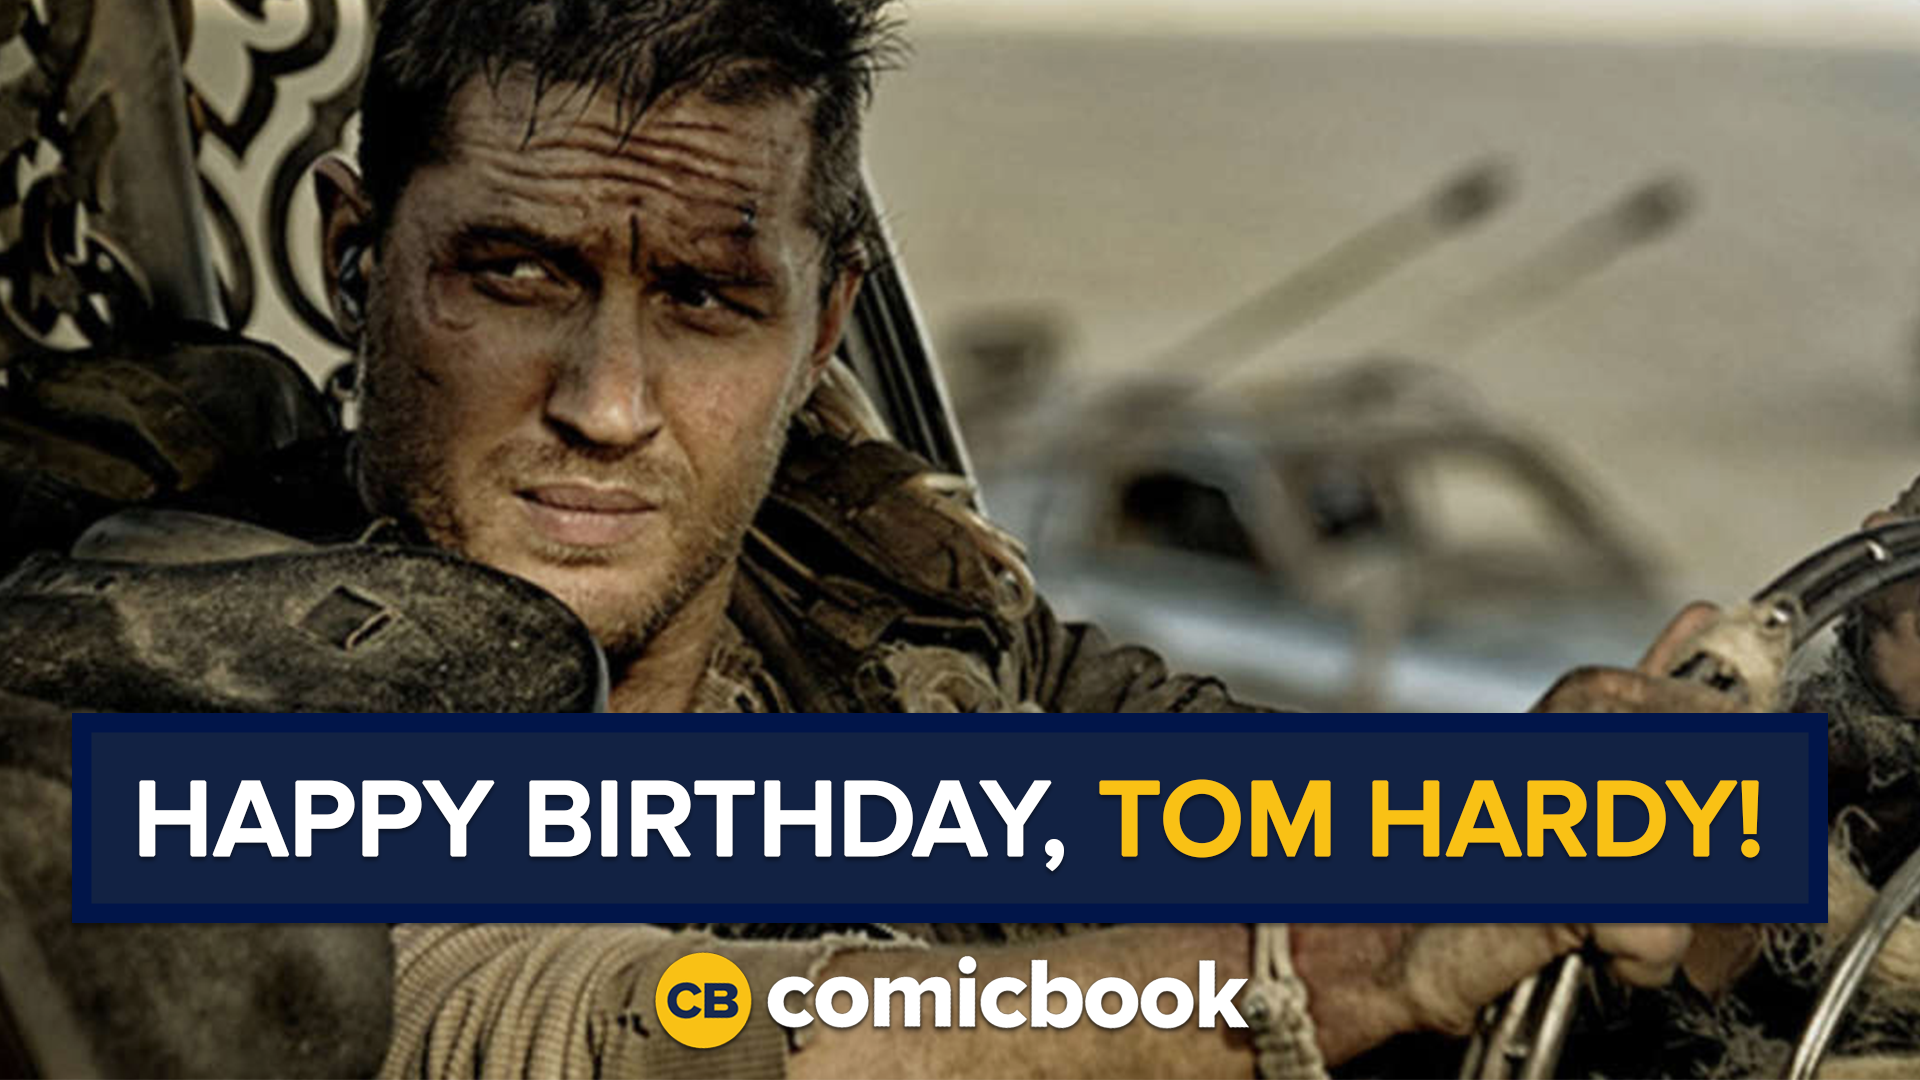 Happy Birthday, Check out some of our favorite Tom Hardy scenes!